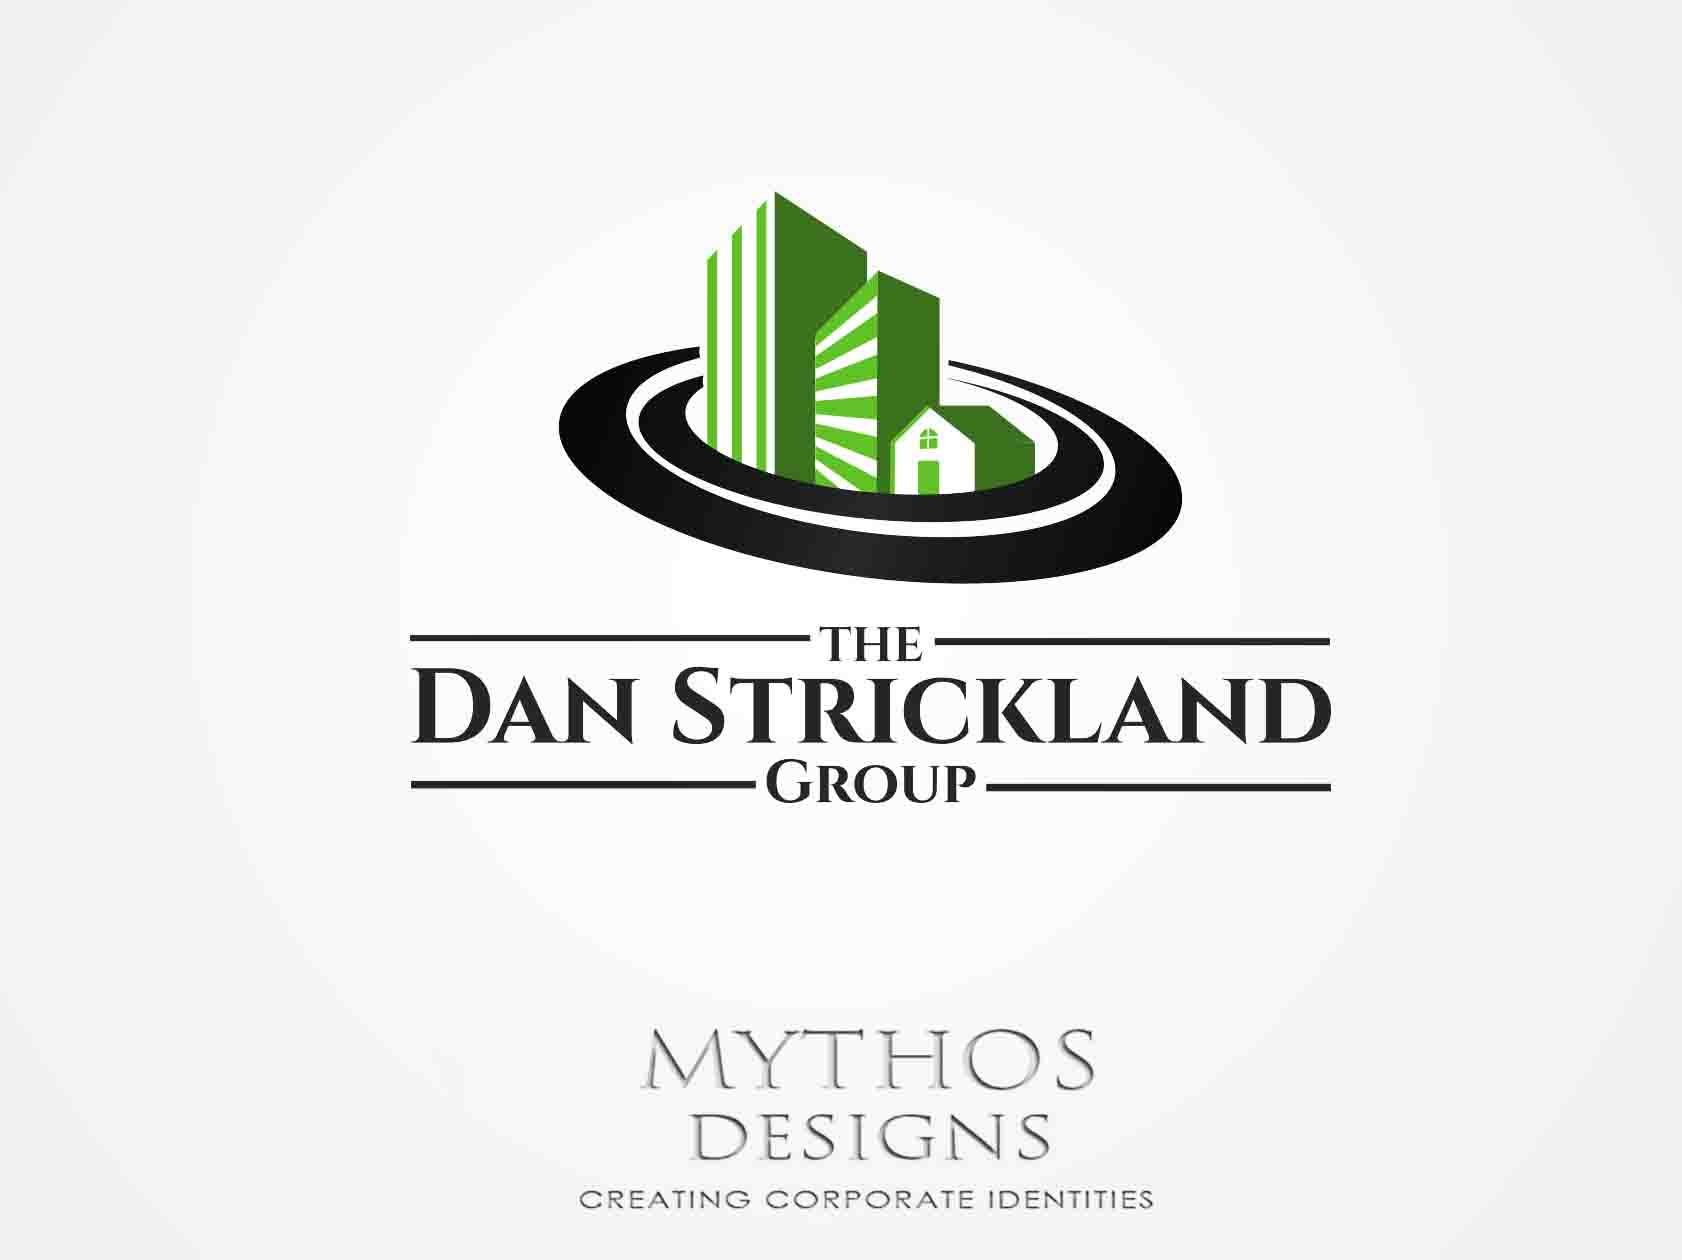 Logo Design by Mythos Designs - Entry No. 232 in the Logo Design Contest Creative Logo Design for The Dan Strickland Group.